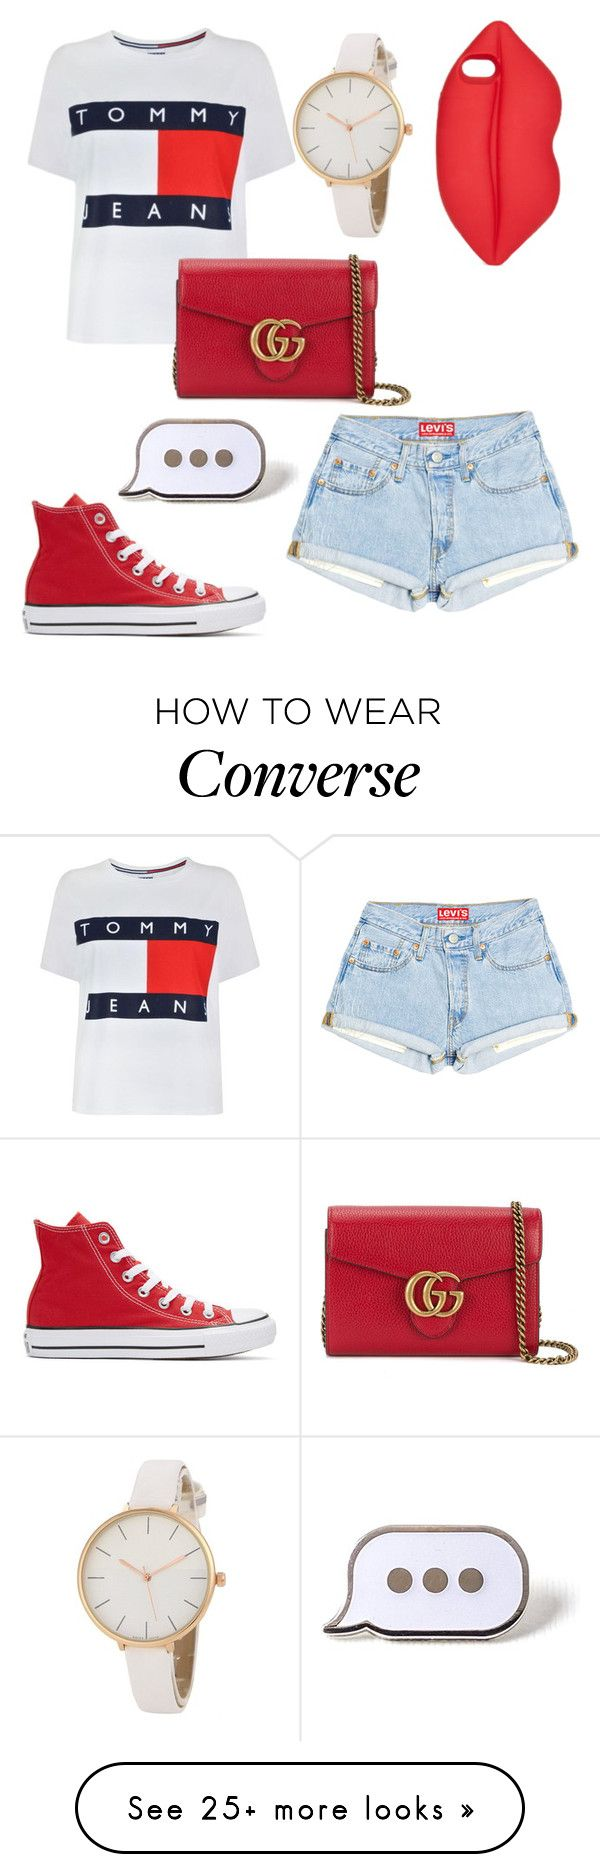 """"""""""" by julietpenrose on Polyvore featuring Tommy Hilfiger, Lulu Guinness, Converse, Gucci and PINTRILL"""